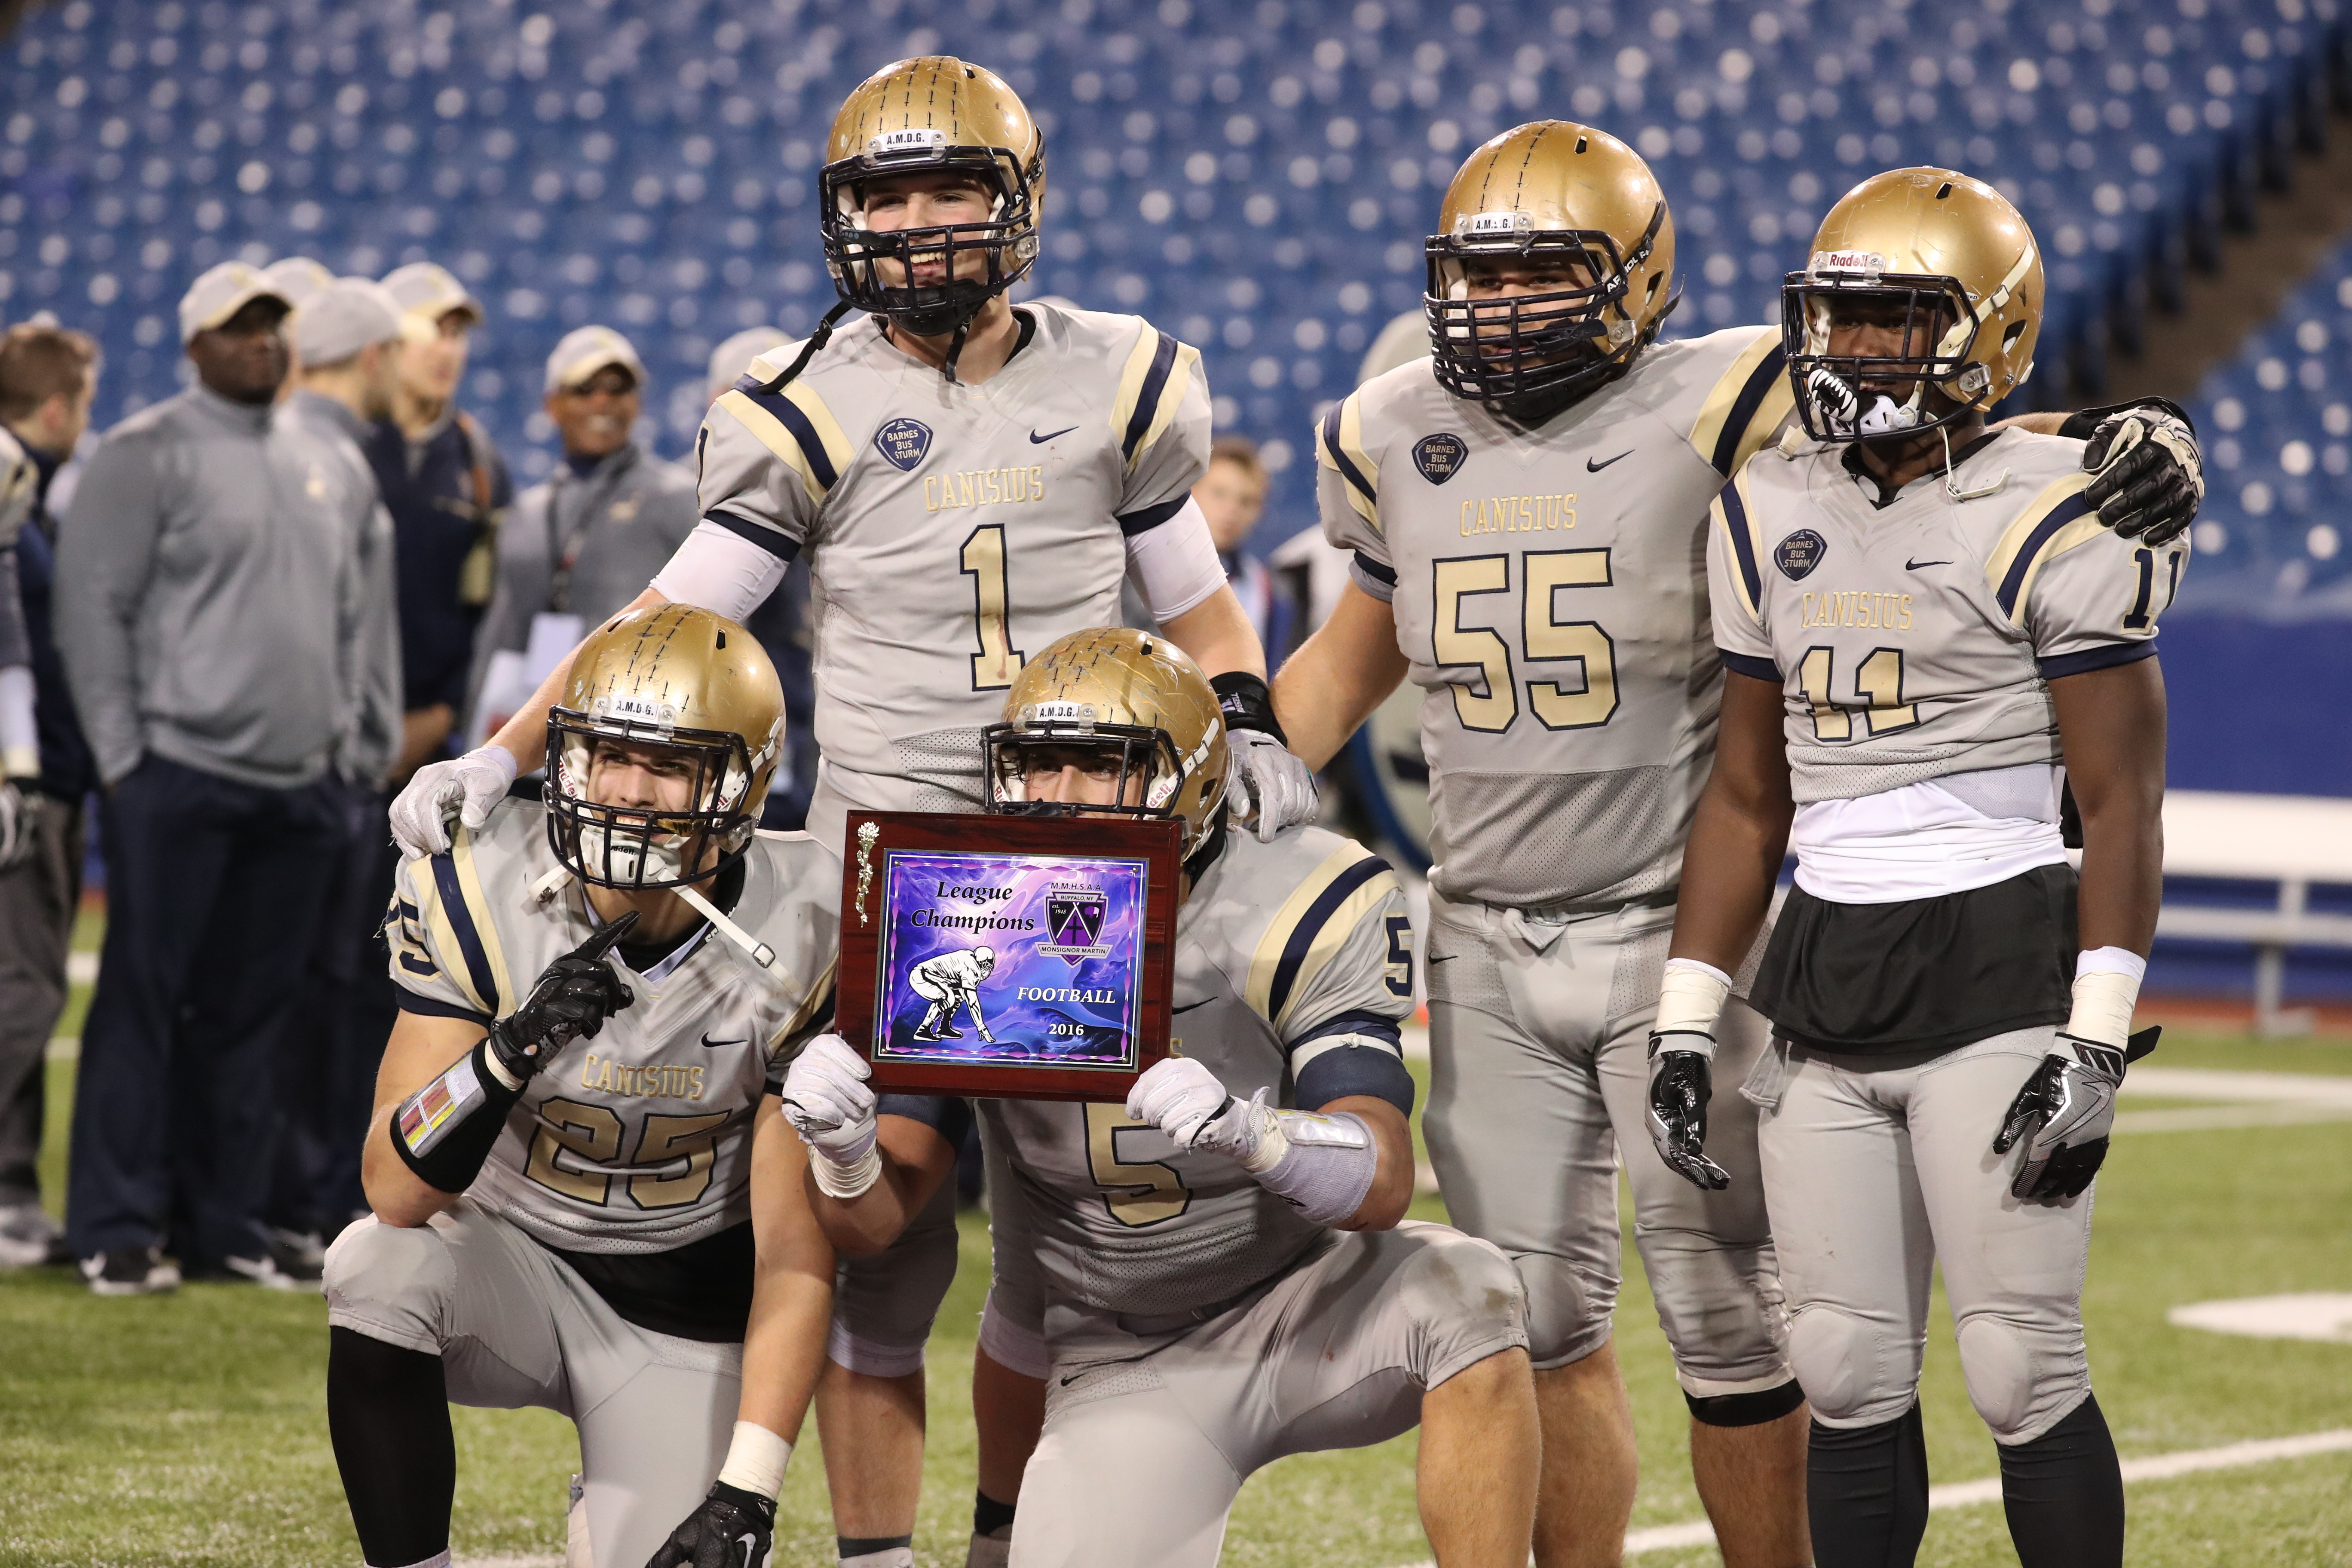 Canisius has been idle since defeating St. Francis, 31-21, for the Monsignor Martin High School Athletic Association football championship at New Era Field on Nov. 17. (James P. McCoy/Buffalo News)